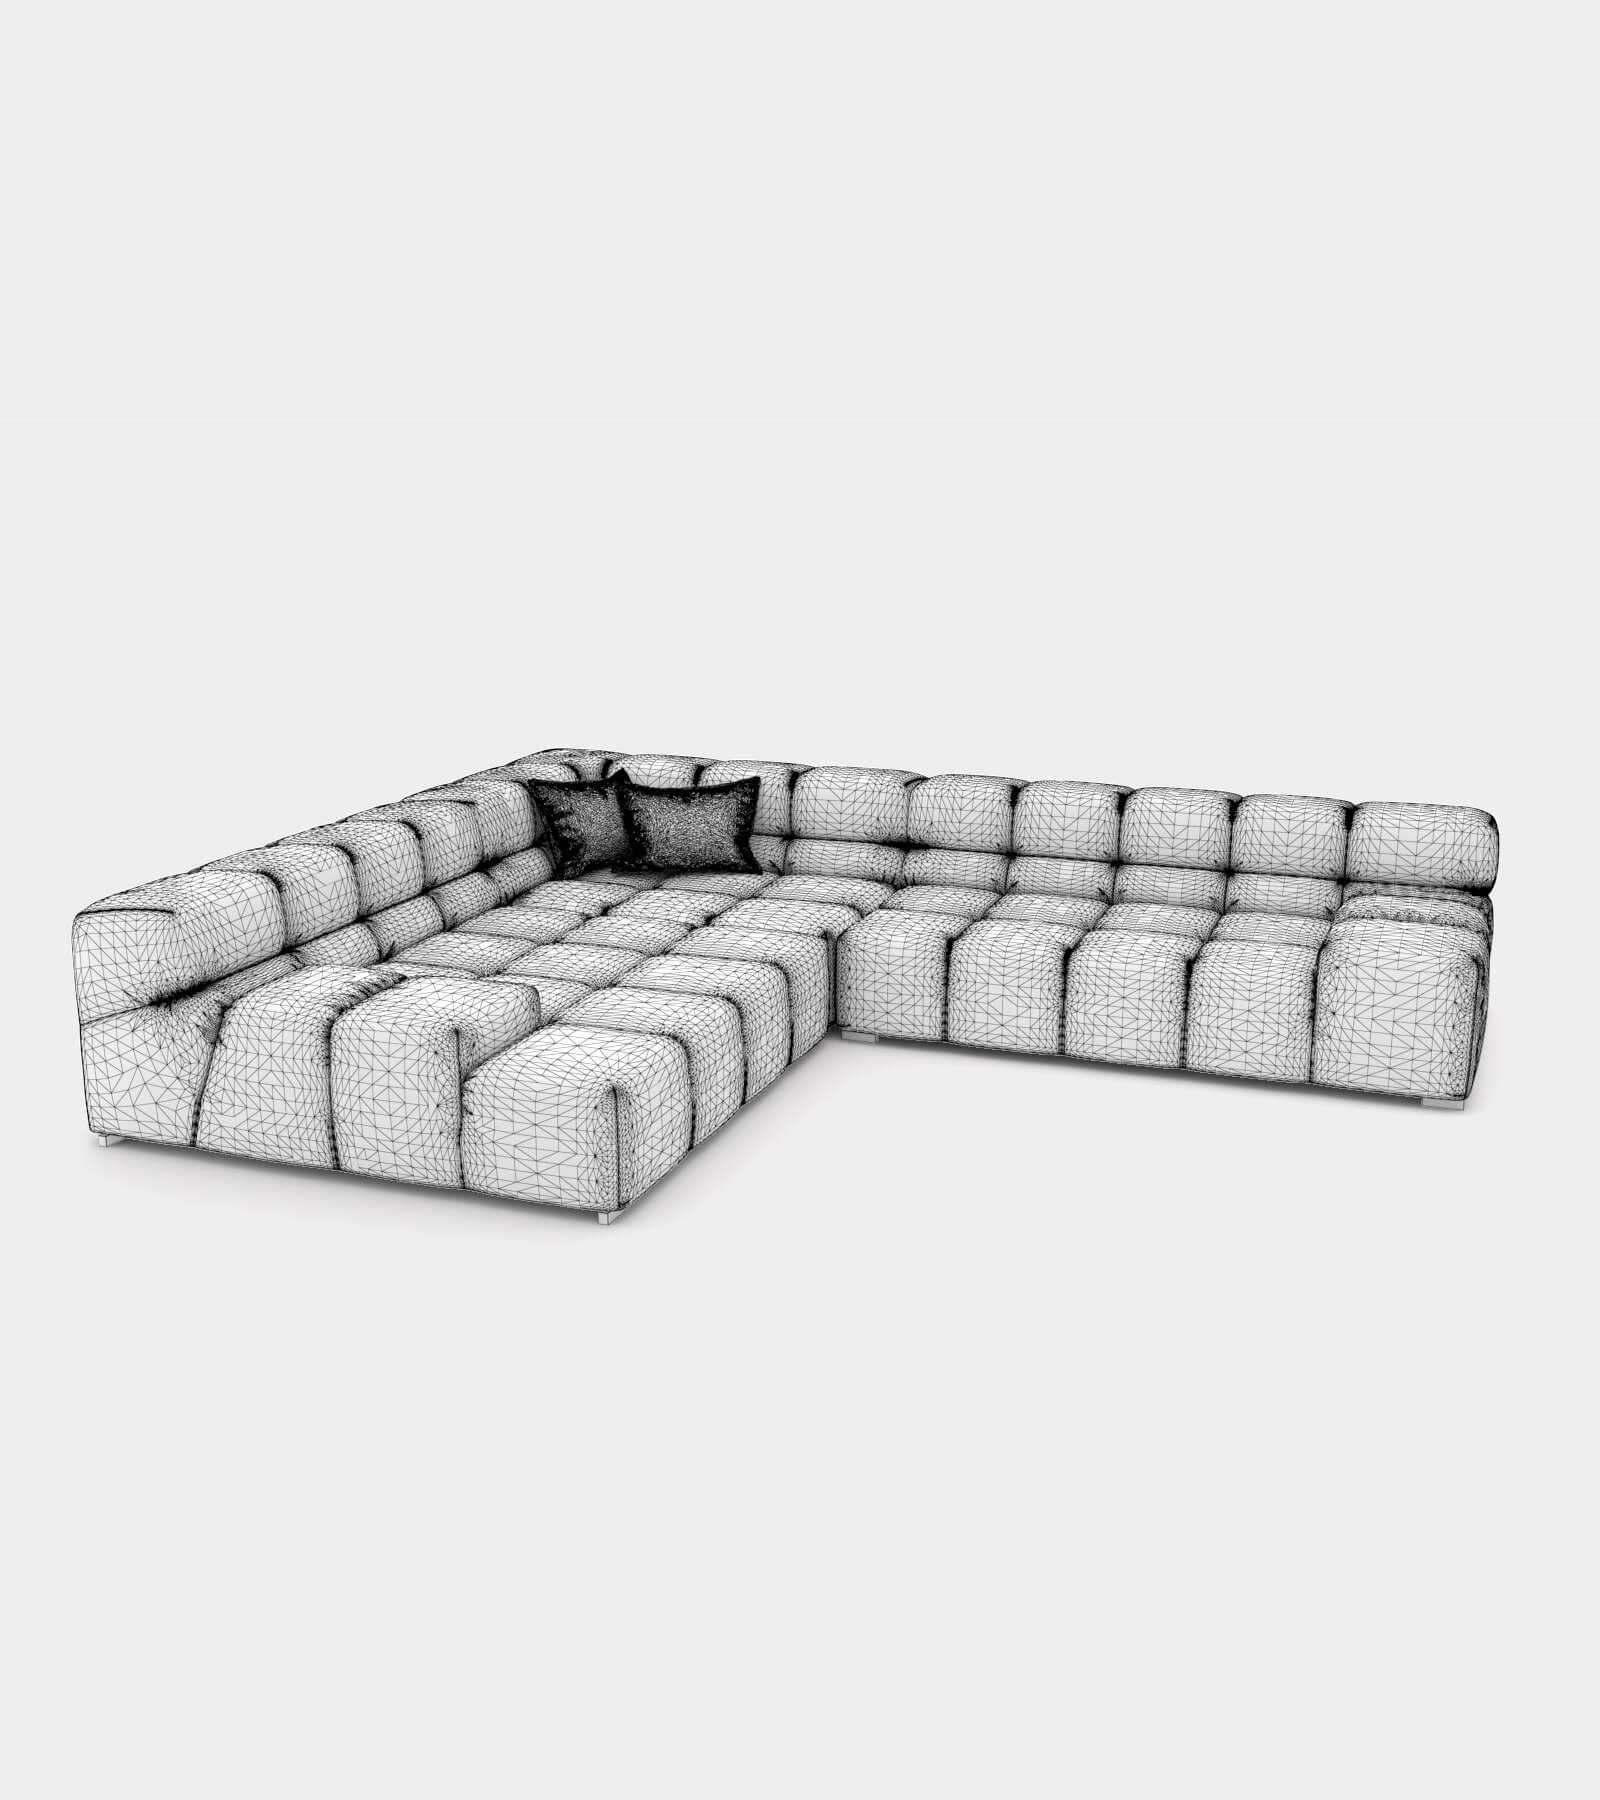 Modular couch system-wire 3D Model